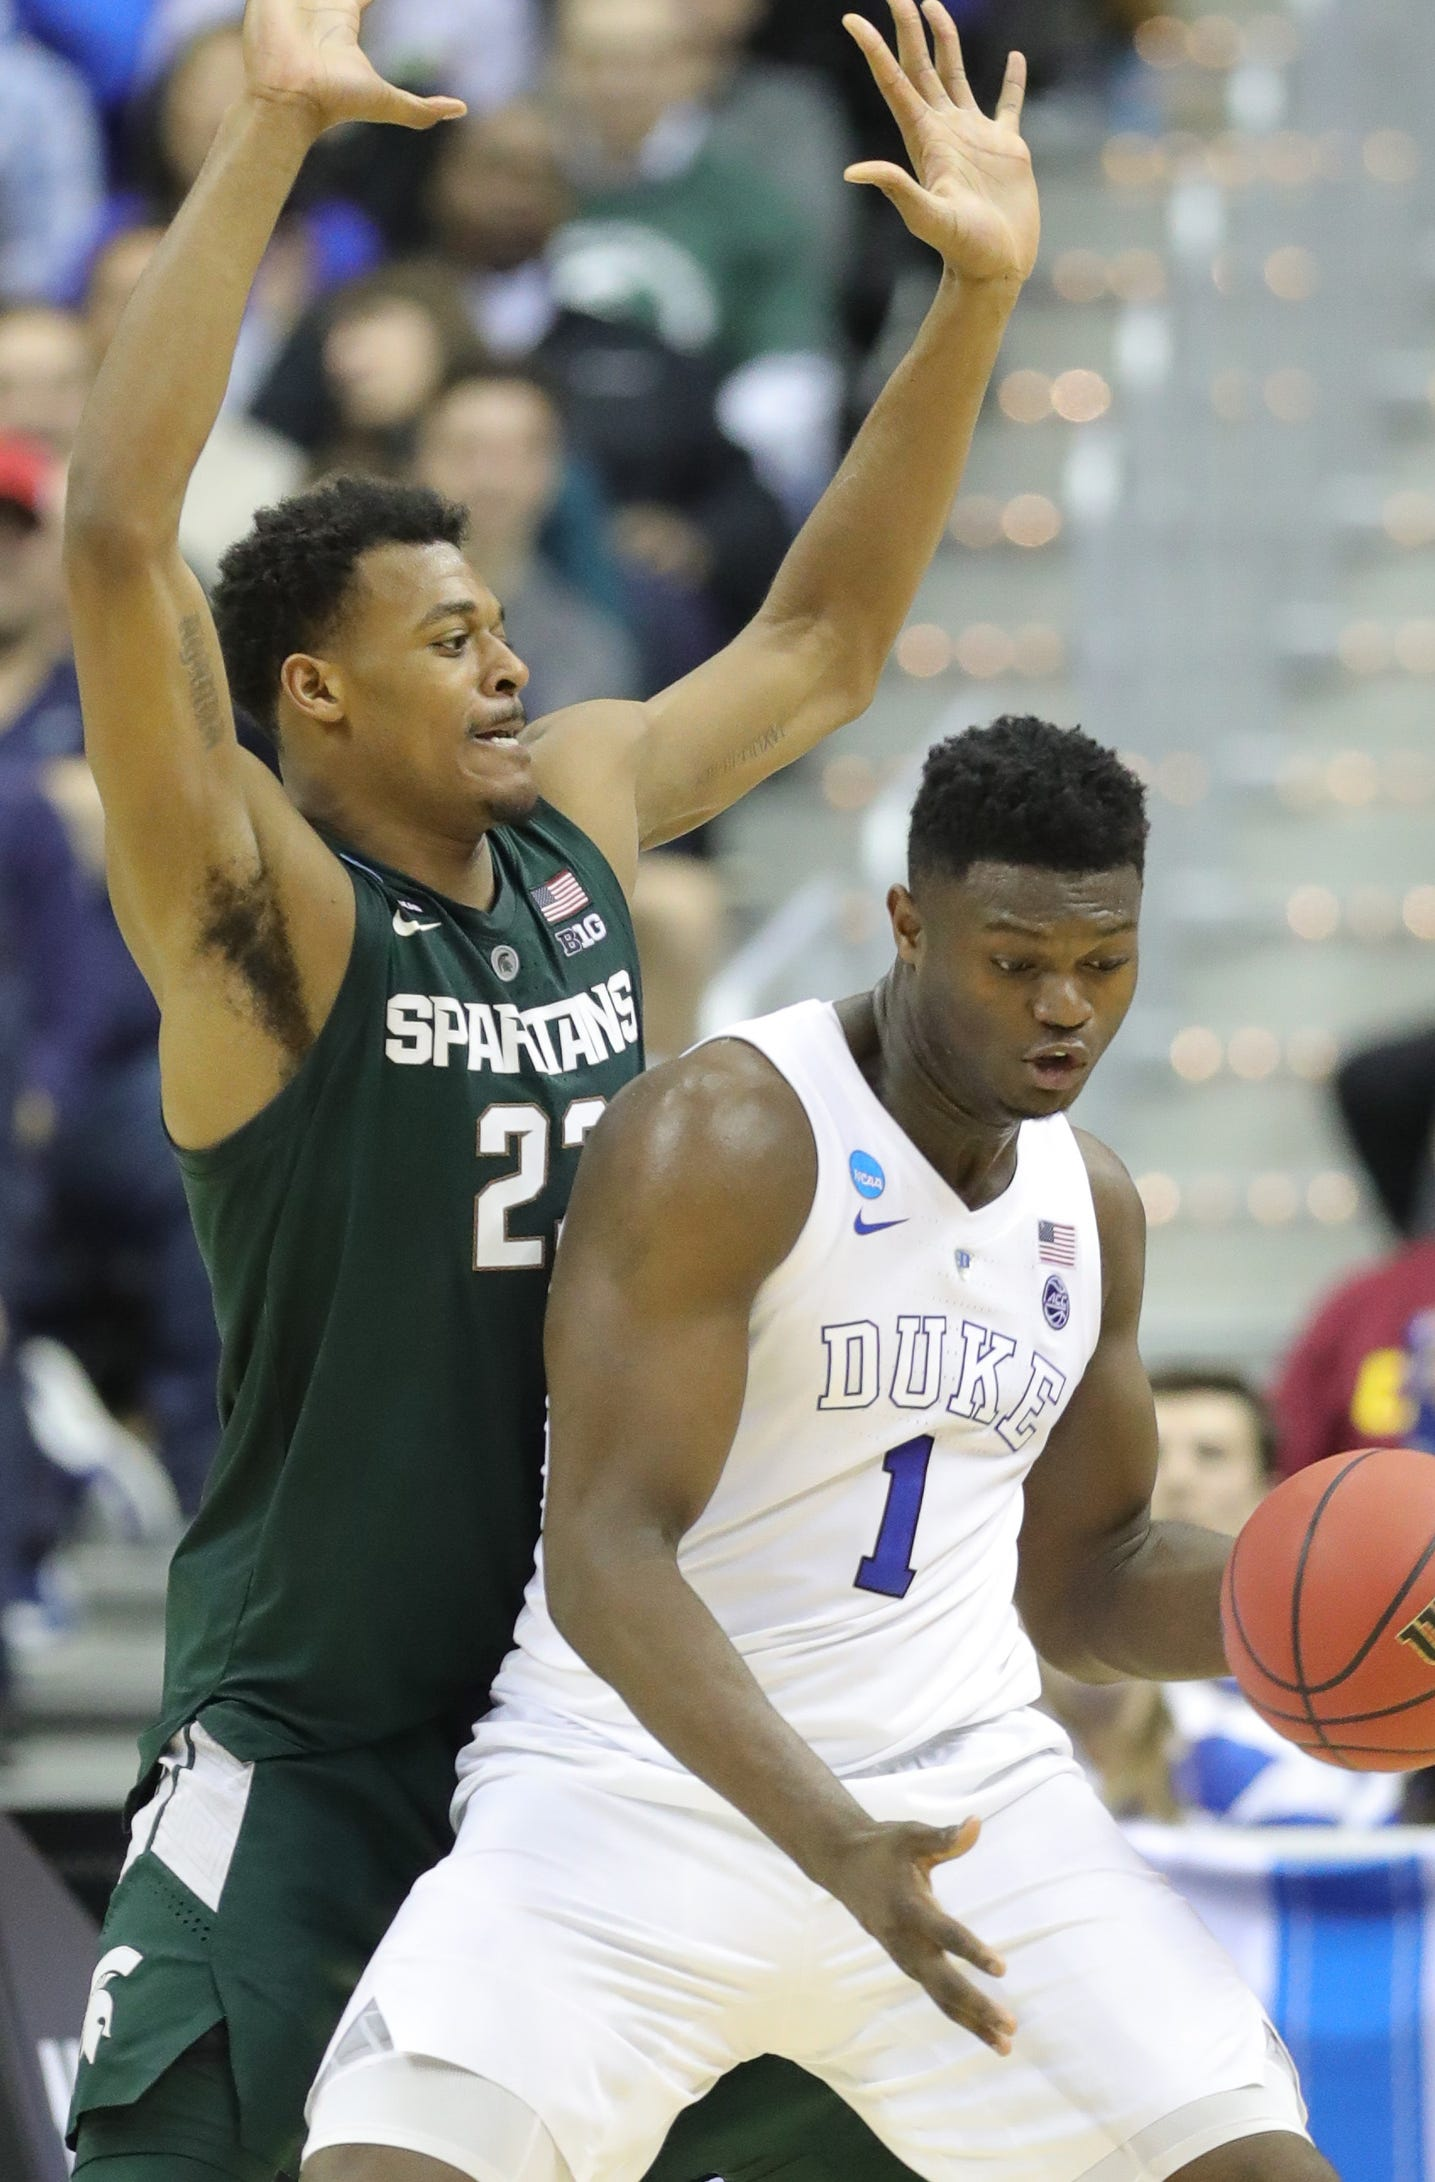 MSU forward Xavier Tillman defends against Duke forward Zion Williamson during the second half of MSU's 68-67 win in the NCAA tournament East Region final on Sunday, March 31, 2019, in Washington.